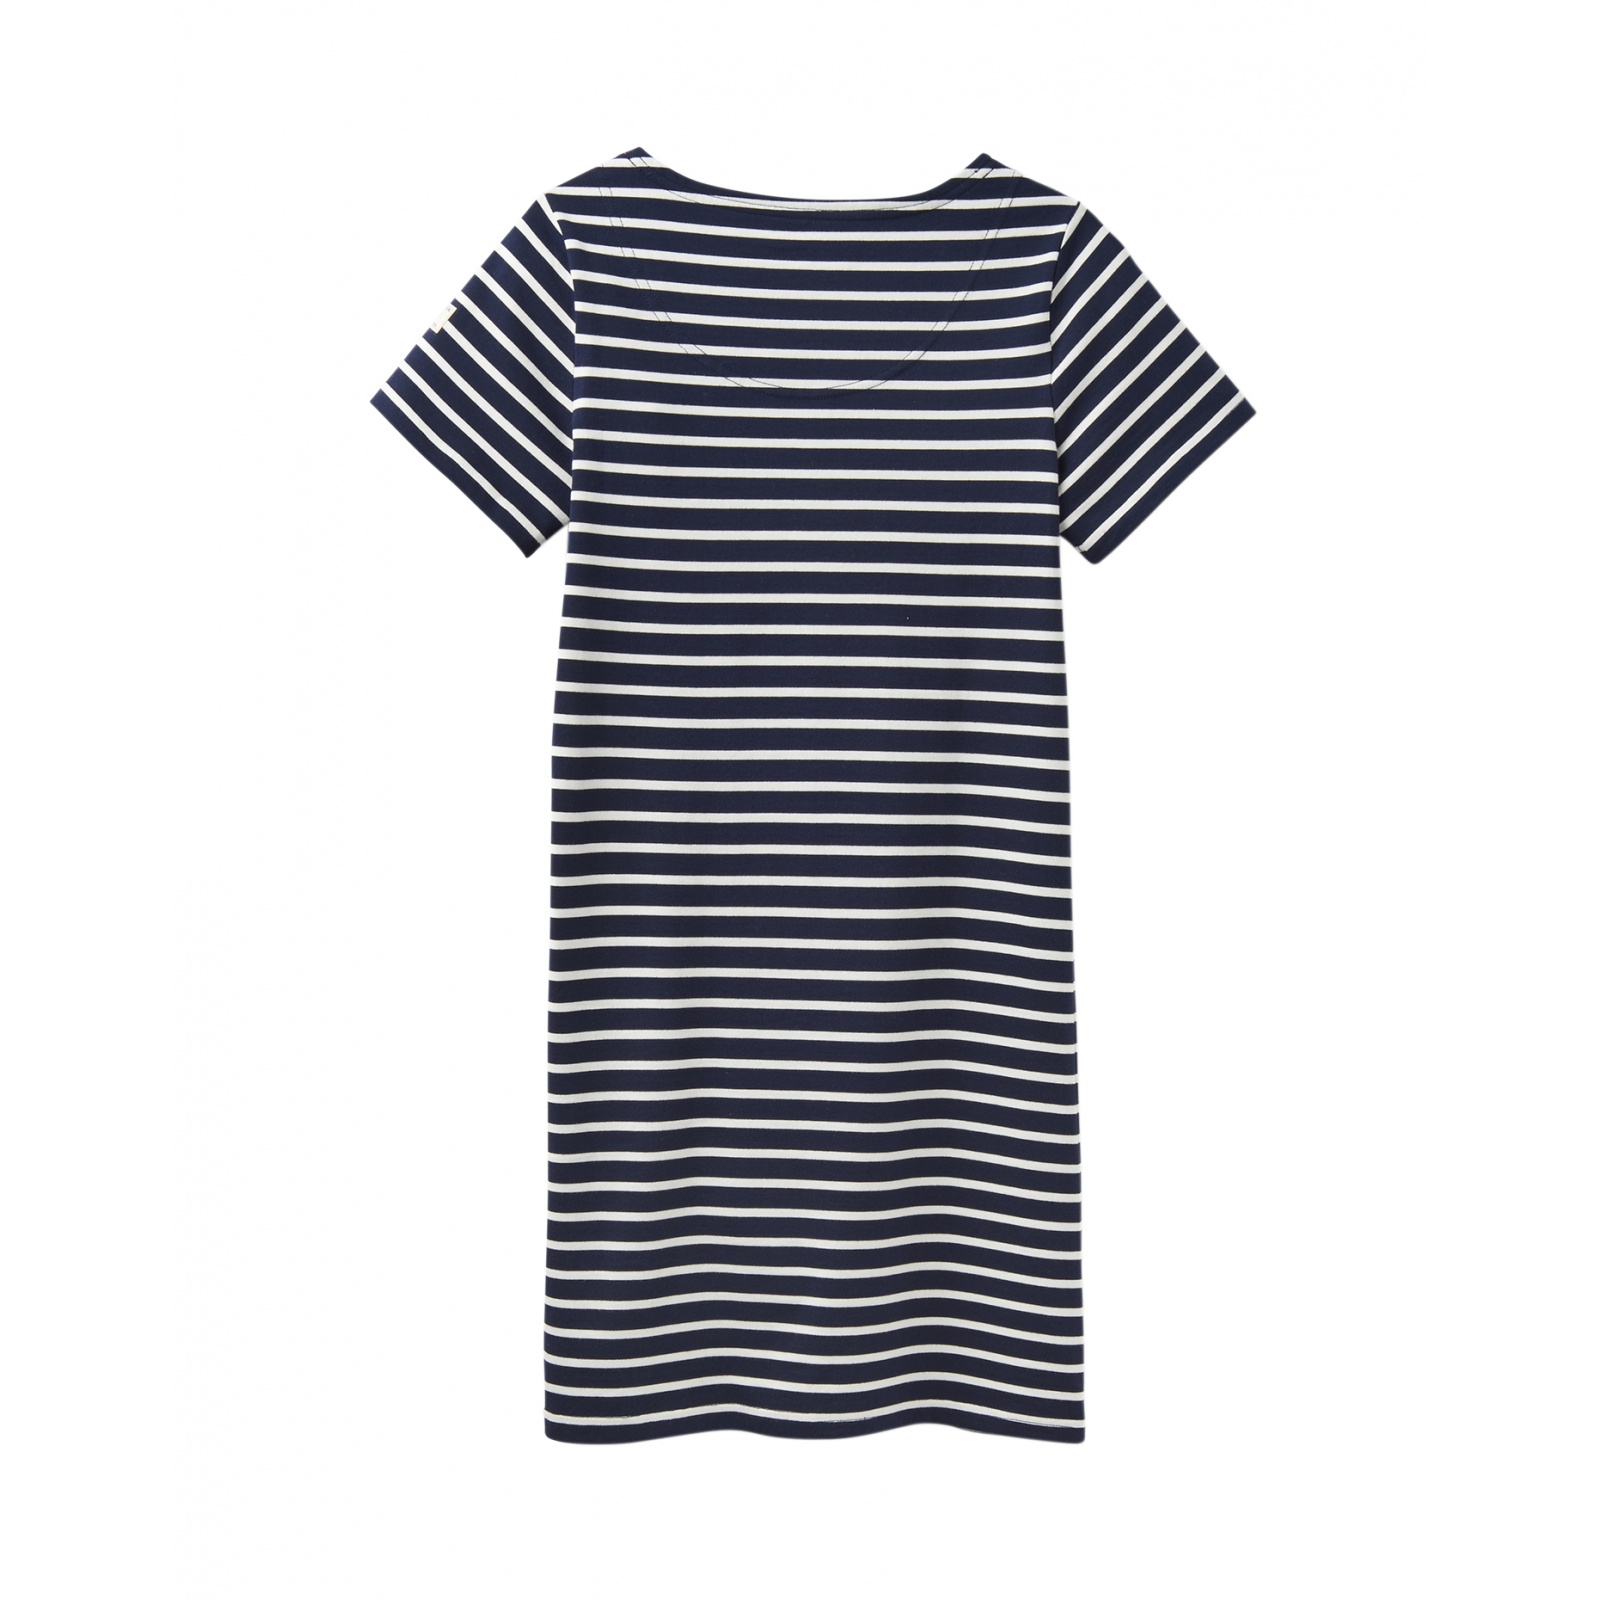 Joules-Riviera-T-Shirt-Dress-with-Short-Sleeves-SS19 miniature 20